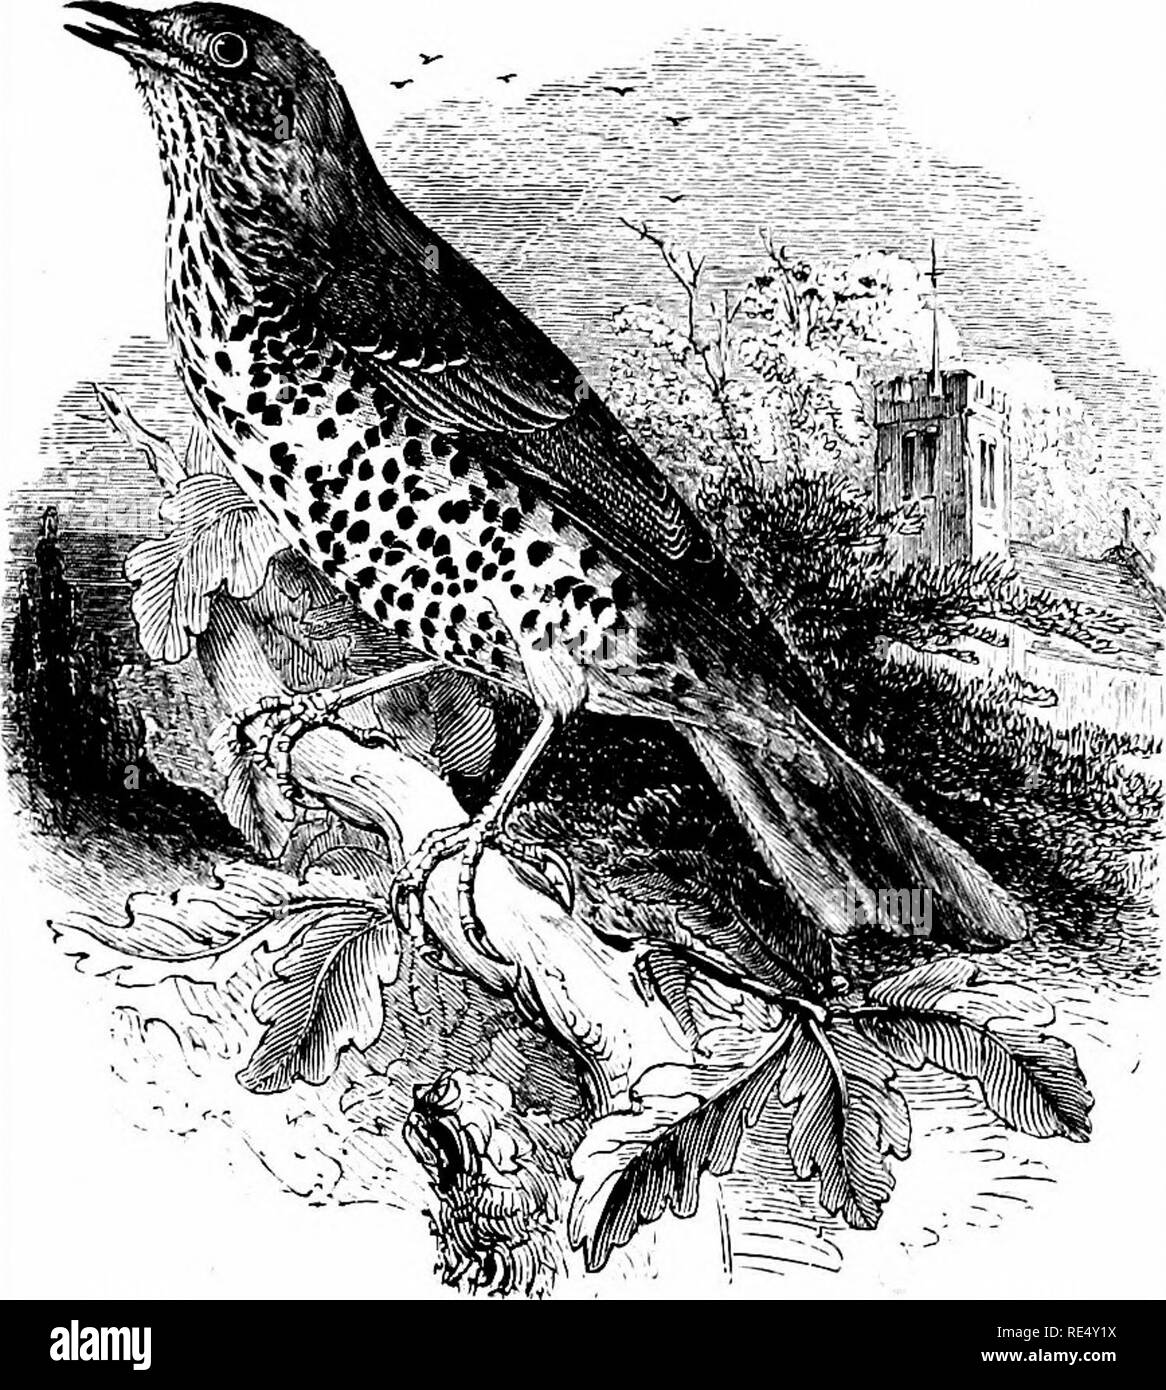 . An illustrated manual of British birds. Birds. BRITISH BIRDS.. THE MISTLE-THRUSH. TuRDUs viscfvoRUS, Linnaeus. Owing perhaps to the increase of plantations during the present century, the Mistle-Thrush, the largest resident species of the genus, has extended its breeding-range northward to Caithness, Suther- land and West Ross, as well as to some of the Hebrides; but to the Orkneys it is chiefly a wanderer, very rarely breeding, and has seldom been recorded from the Shetlands. Until about the year 1800 it was unknown in Ireland, where it is now sedentary and increasing; while in England and  - Stock Image